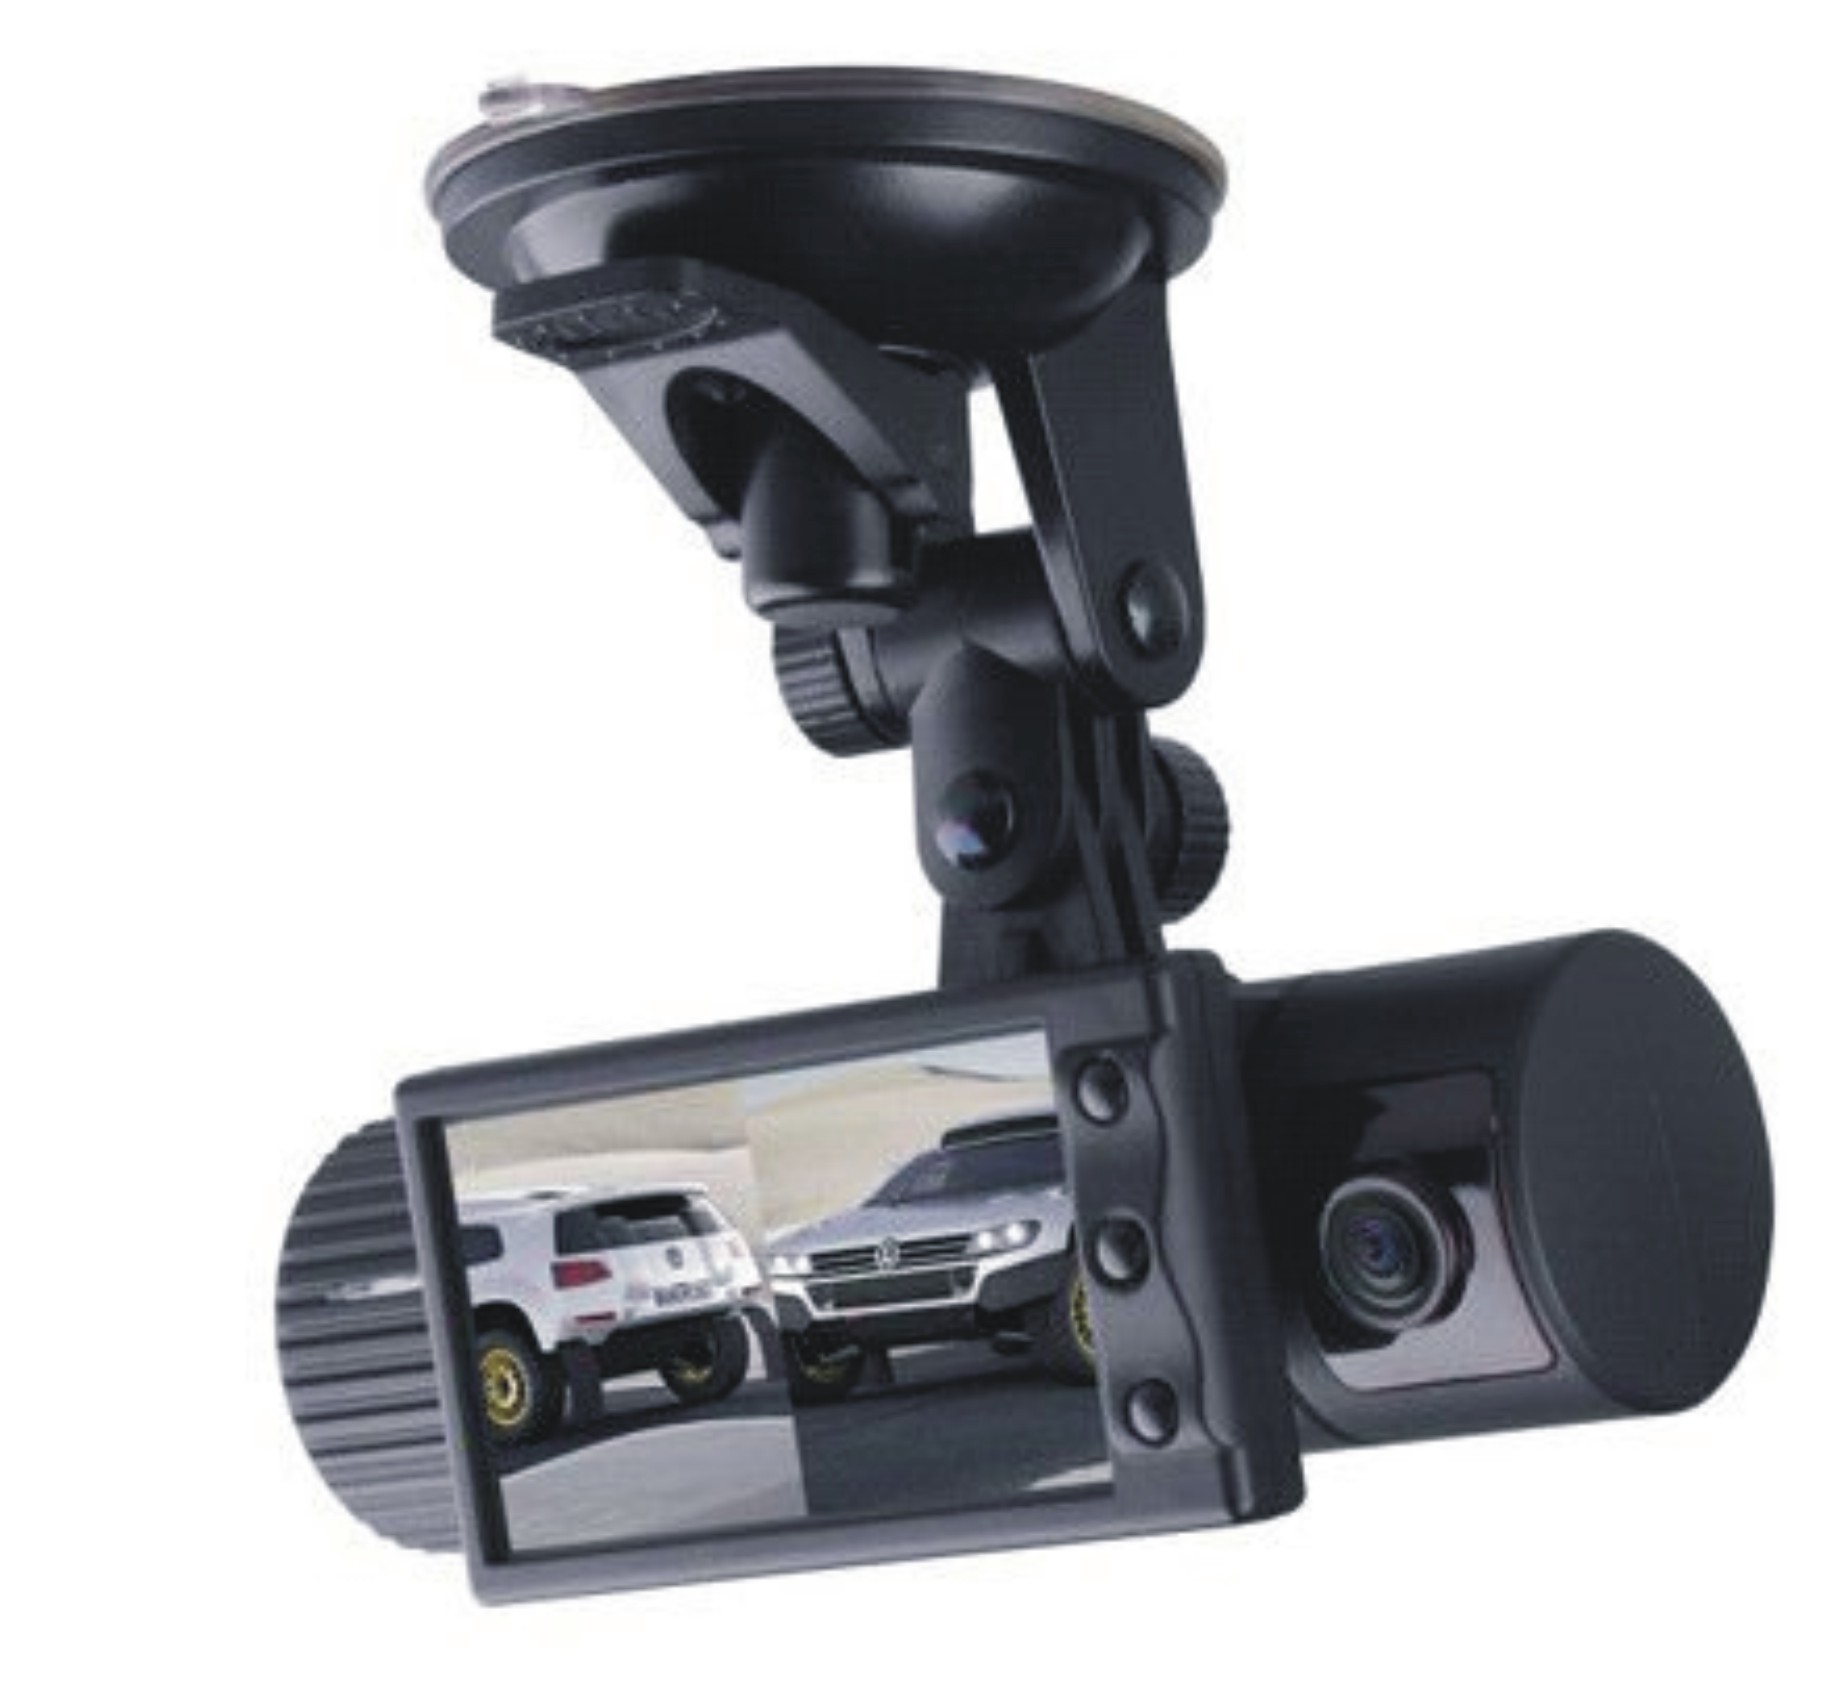 Dual Lens Dashboard Camera In Manali